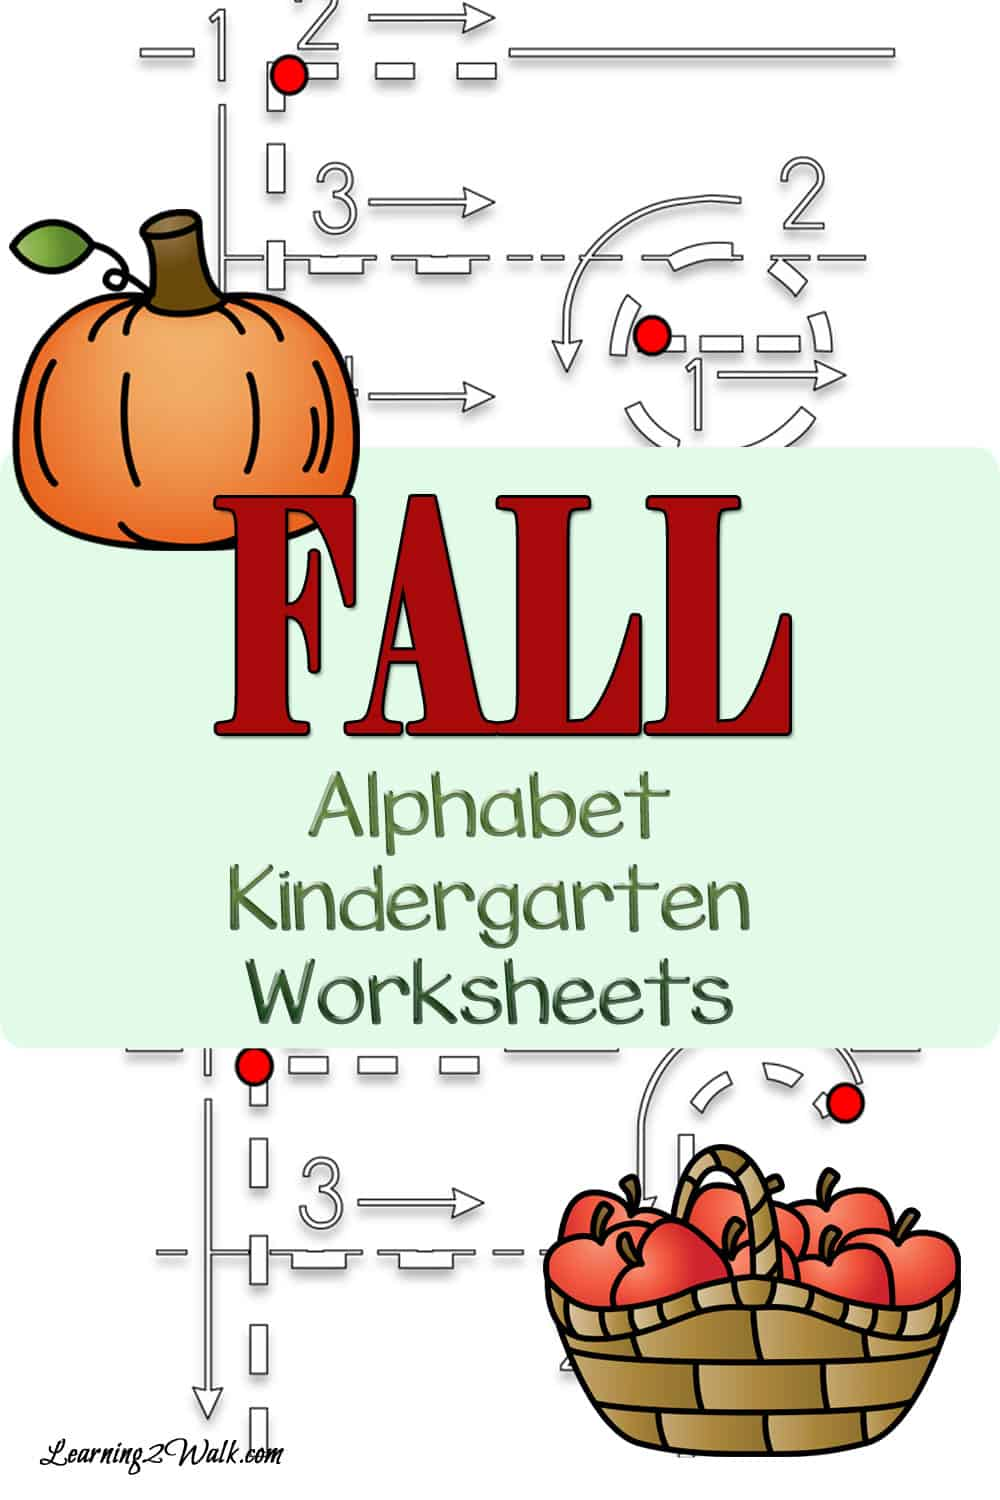 These Fall alphabet kindergarten worksheets are perfect for helping your little ones work on writing those letters of the alphabet